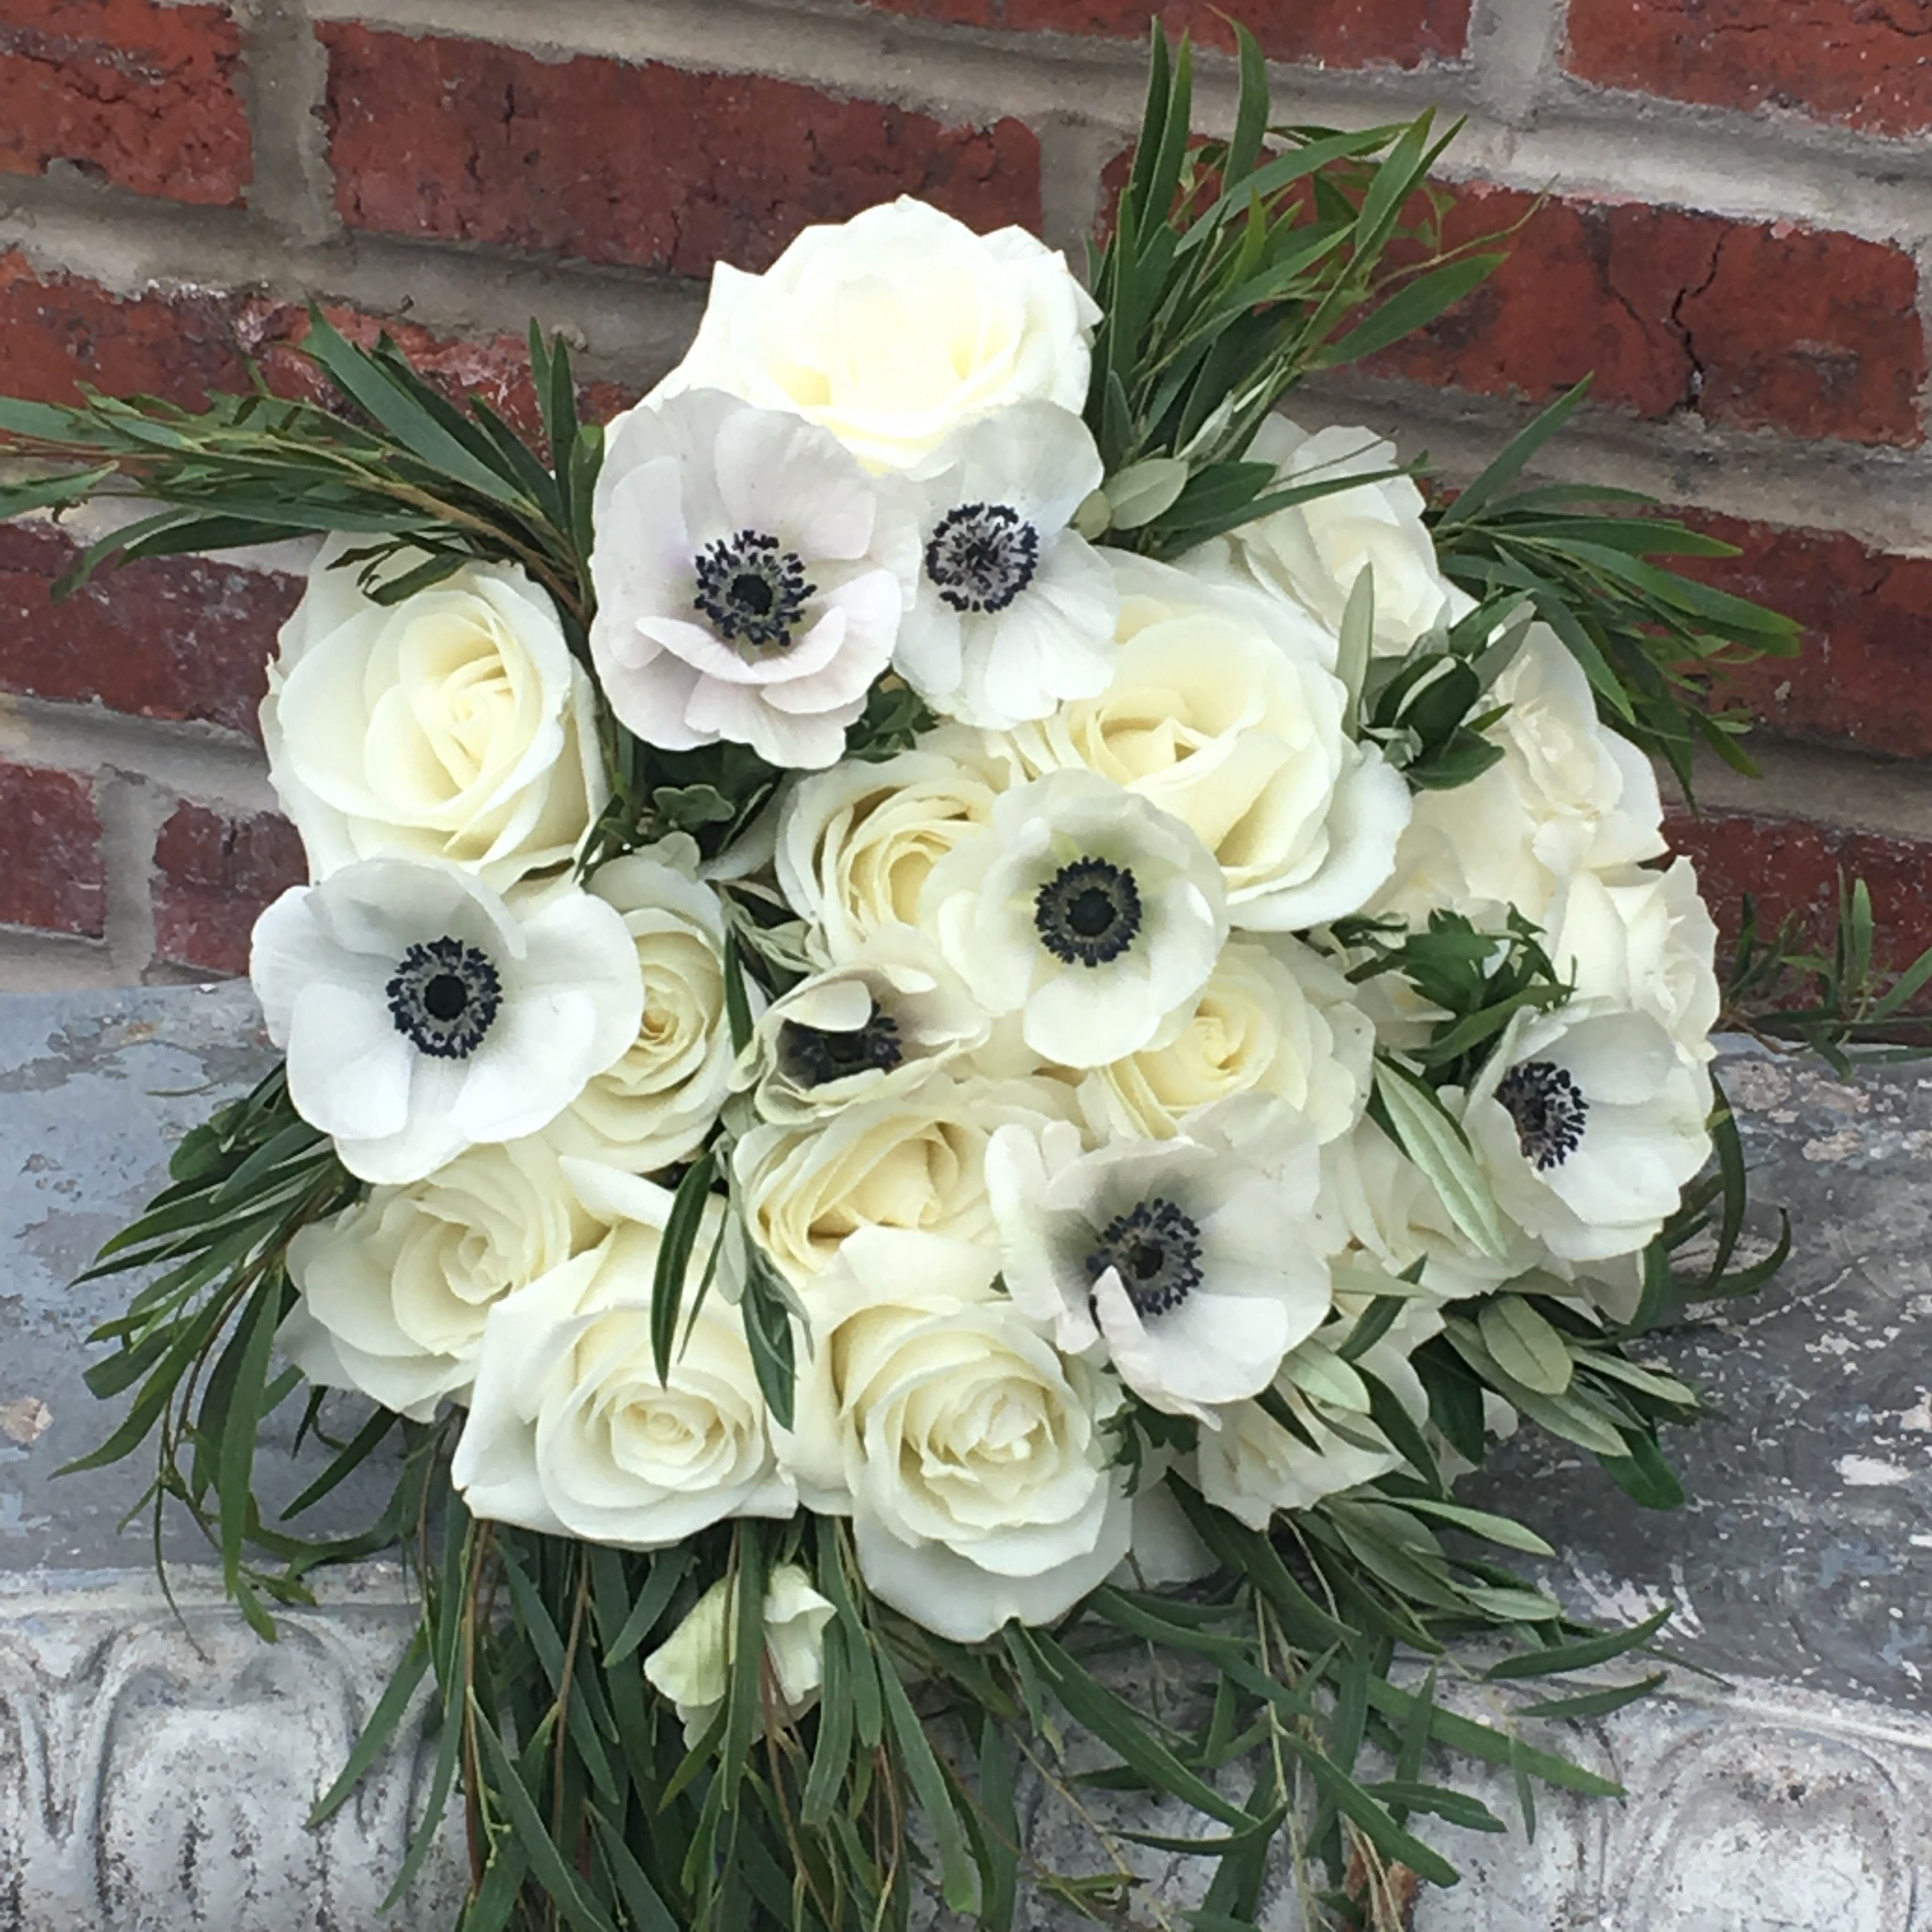 Bridal Bouquet Of White Roses With White Anemone Foliage Of Olive Leaves And Feather Eucalyptus Bridal Bouquet White Anemone White Roses